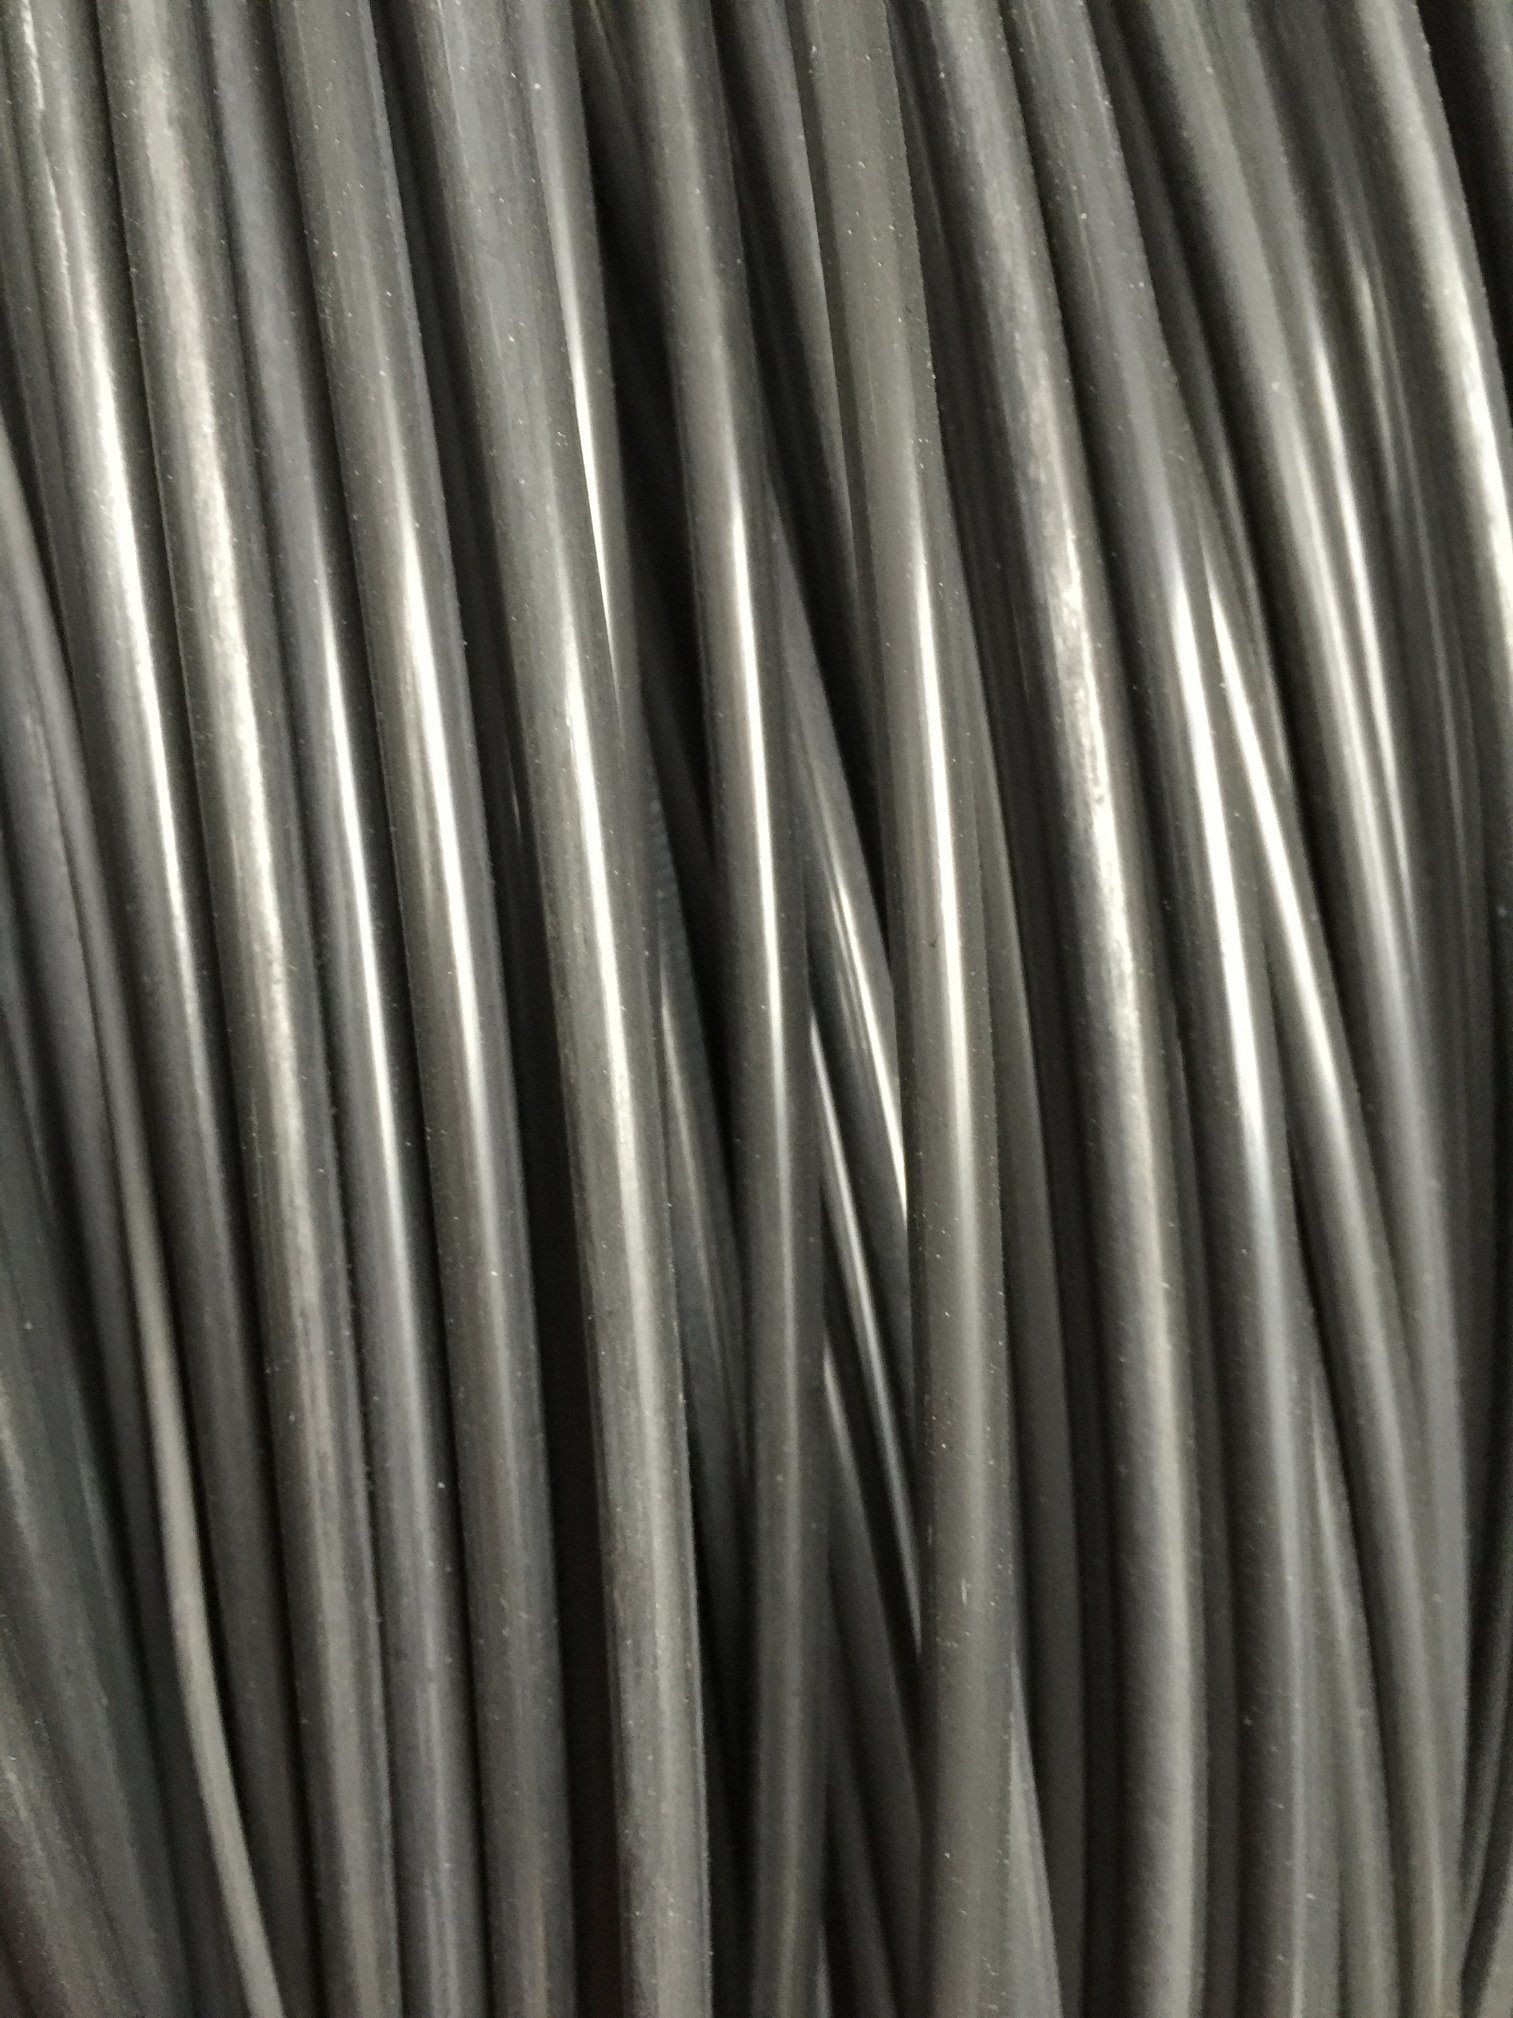 Chq Steel Wire Ml20mntib with Phosphate Coated